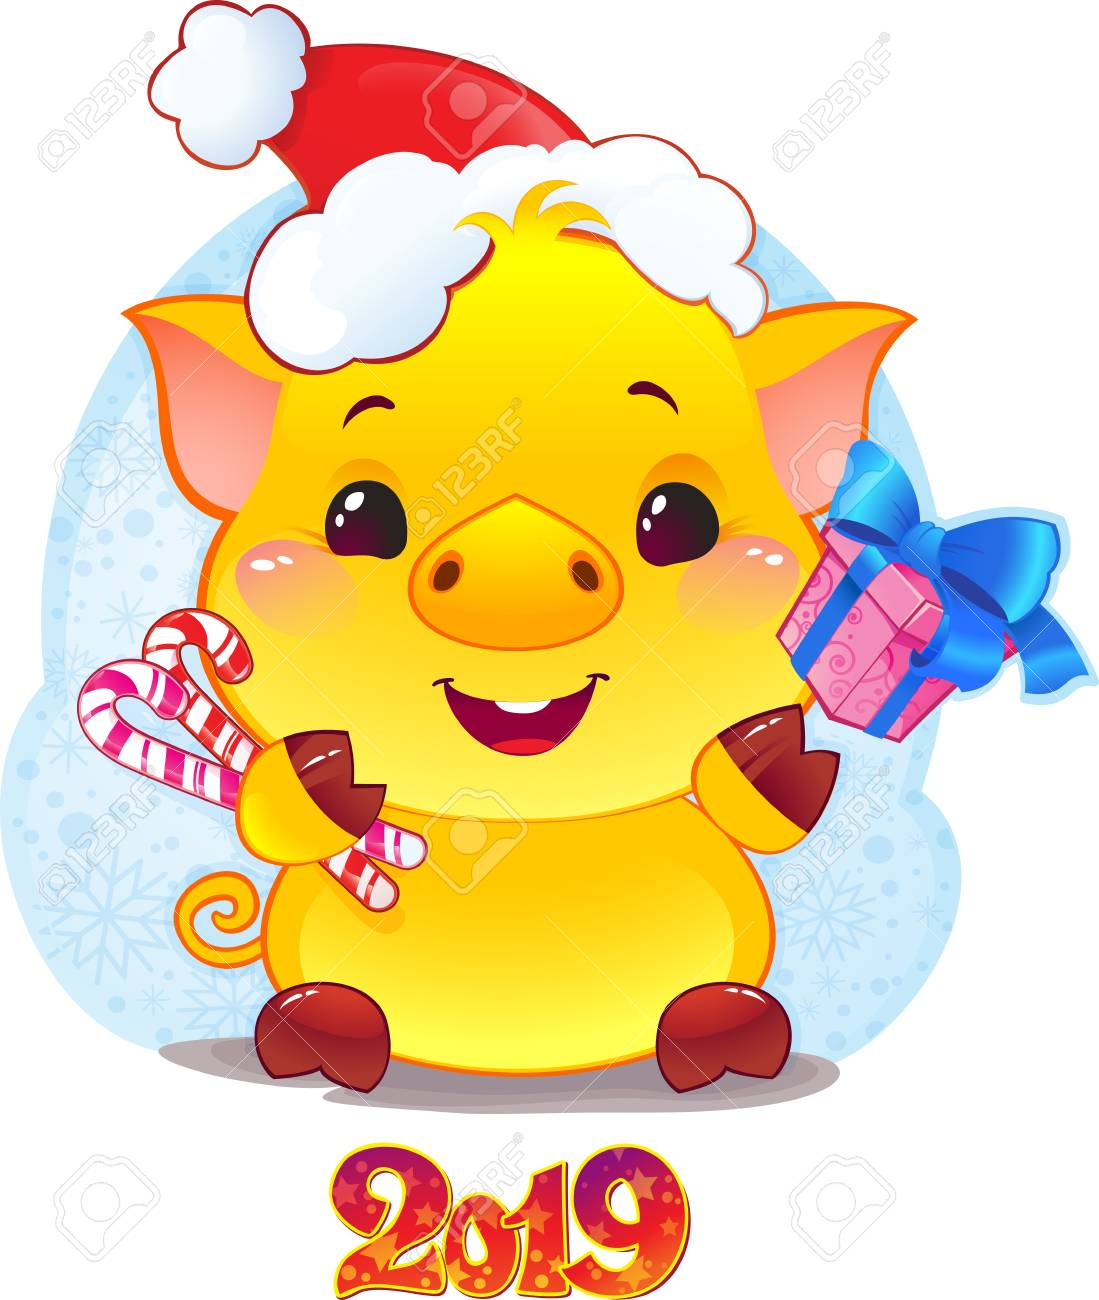 Yellow Earthy Pig Boxes For The New Year 2019. - 111999544